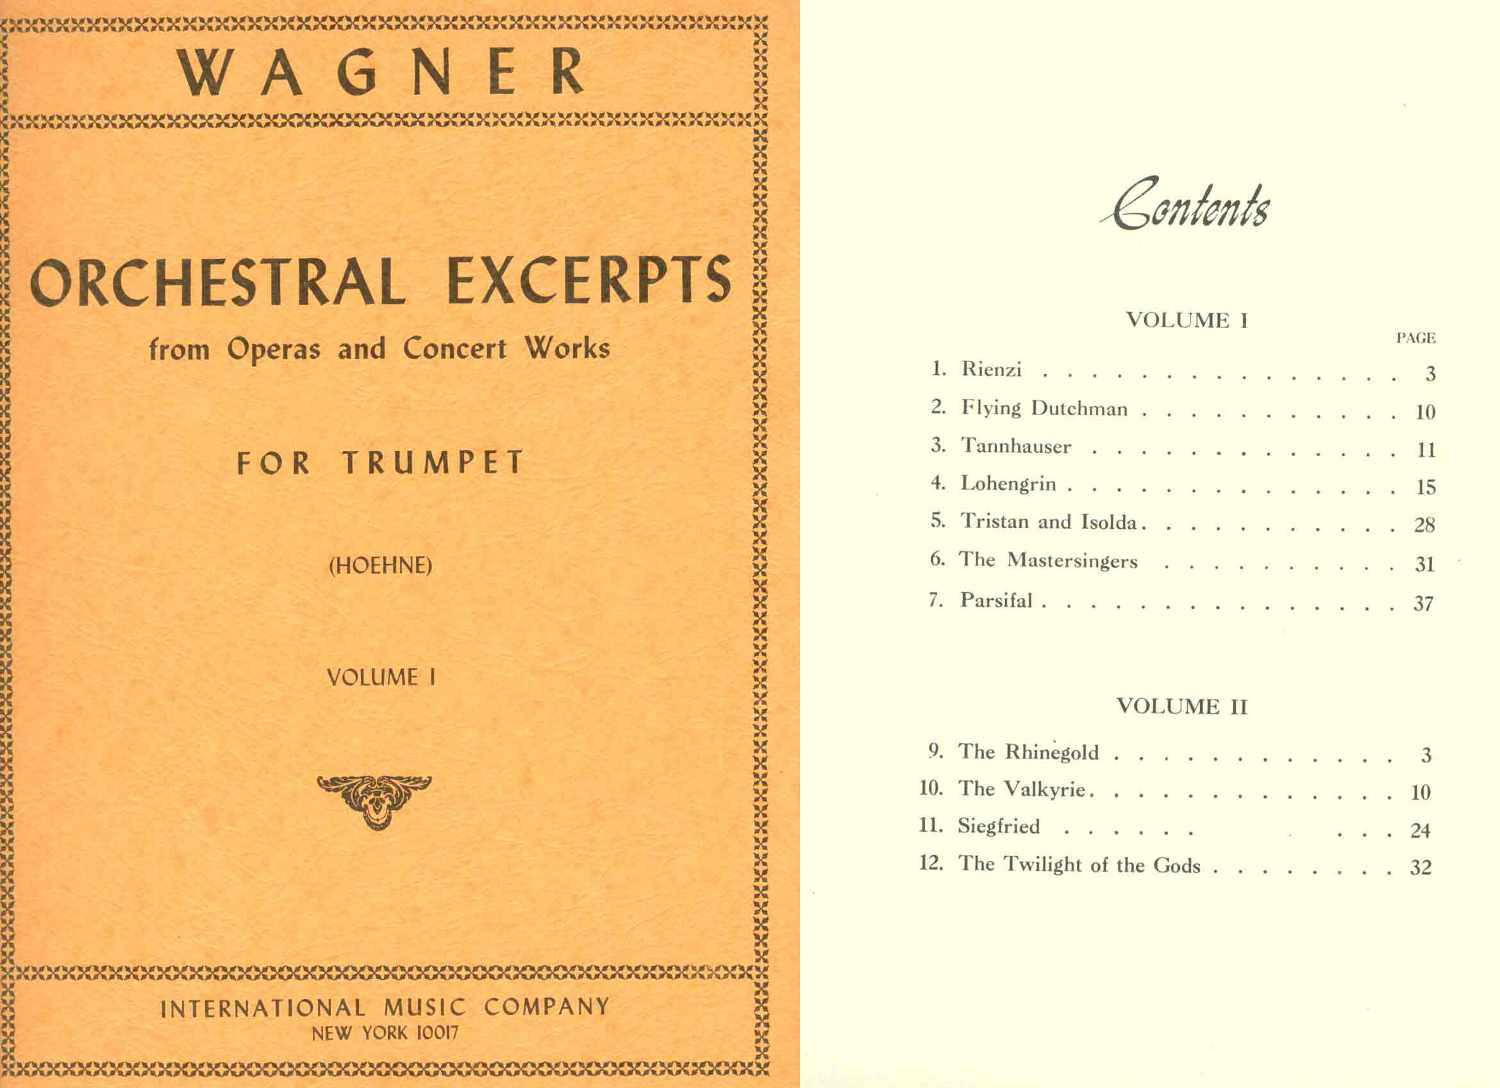 Wagner - Orchestral Excerpts For Trumpet Volume 1